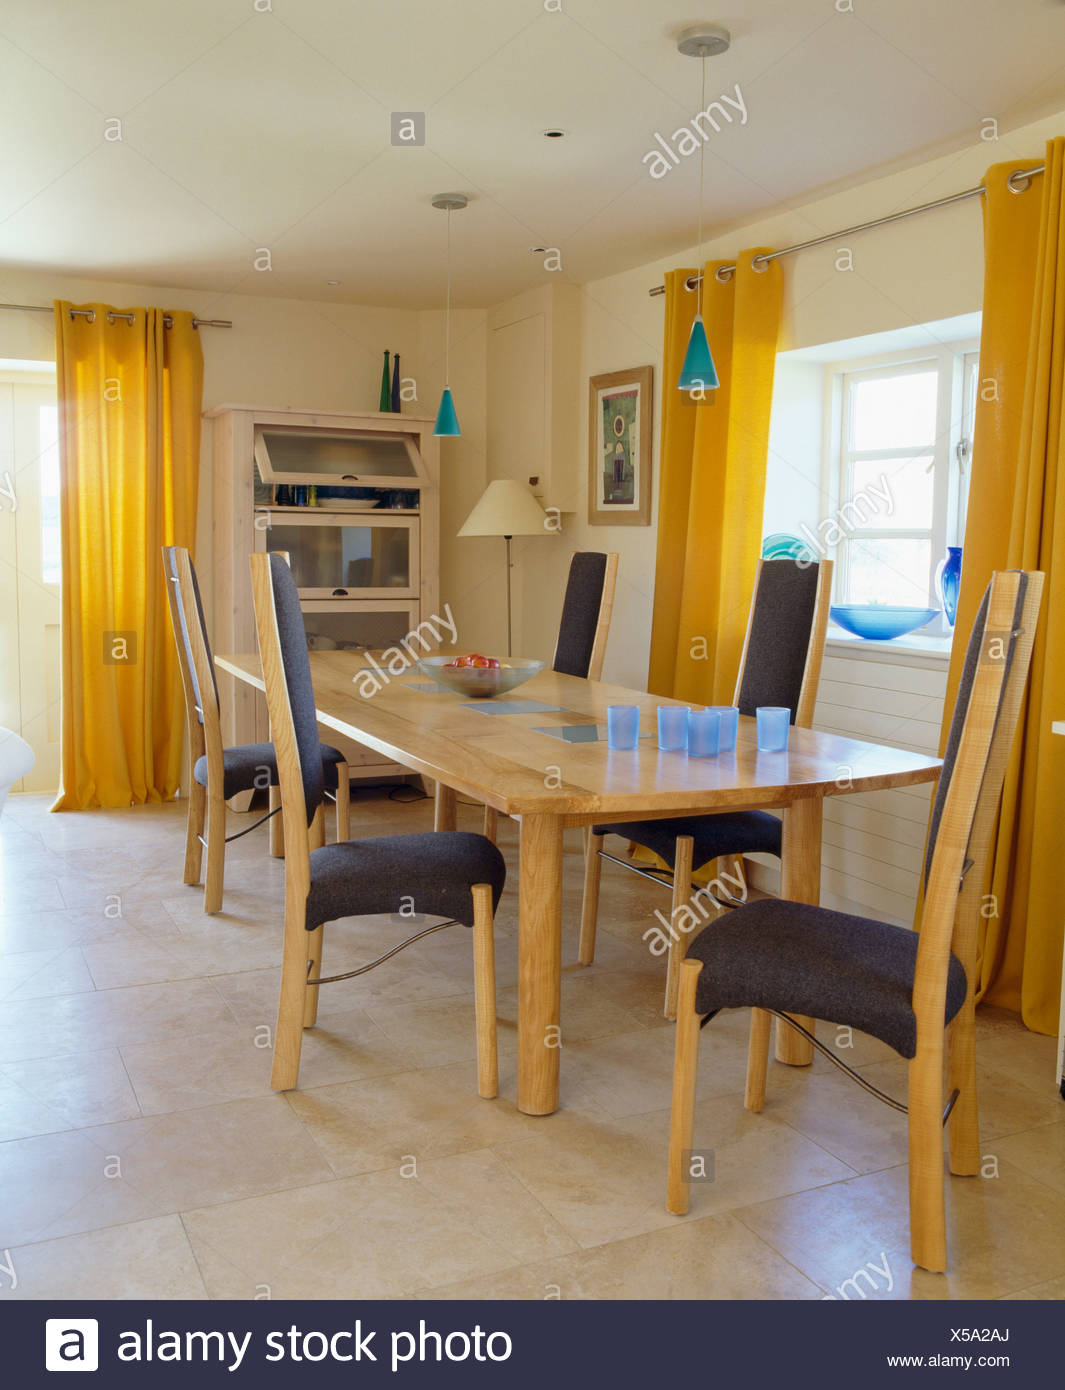 Yellow Curtains And Limestone Flooring In Modern Dining Room With Tall Back Chairs At Simple Pale Wood Table Stock Photo Alamy